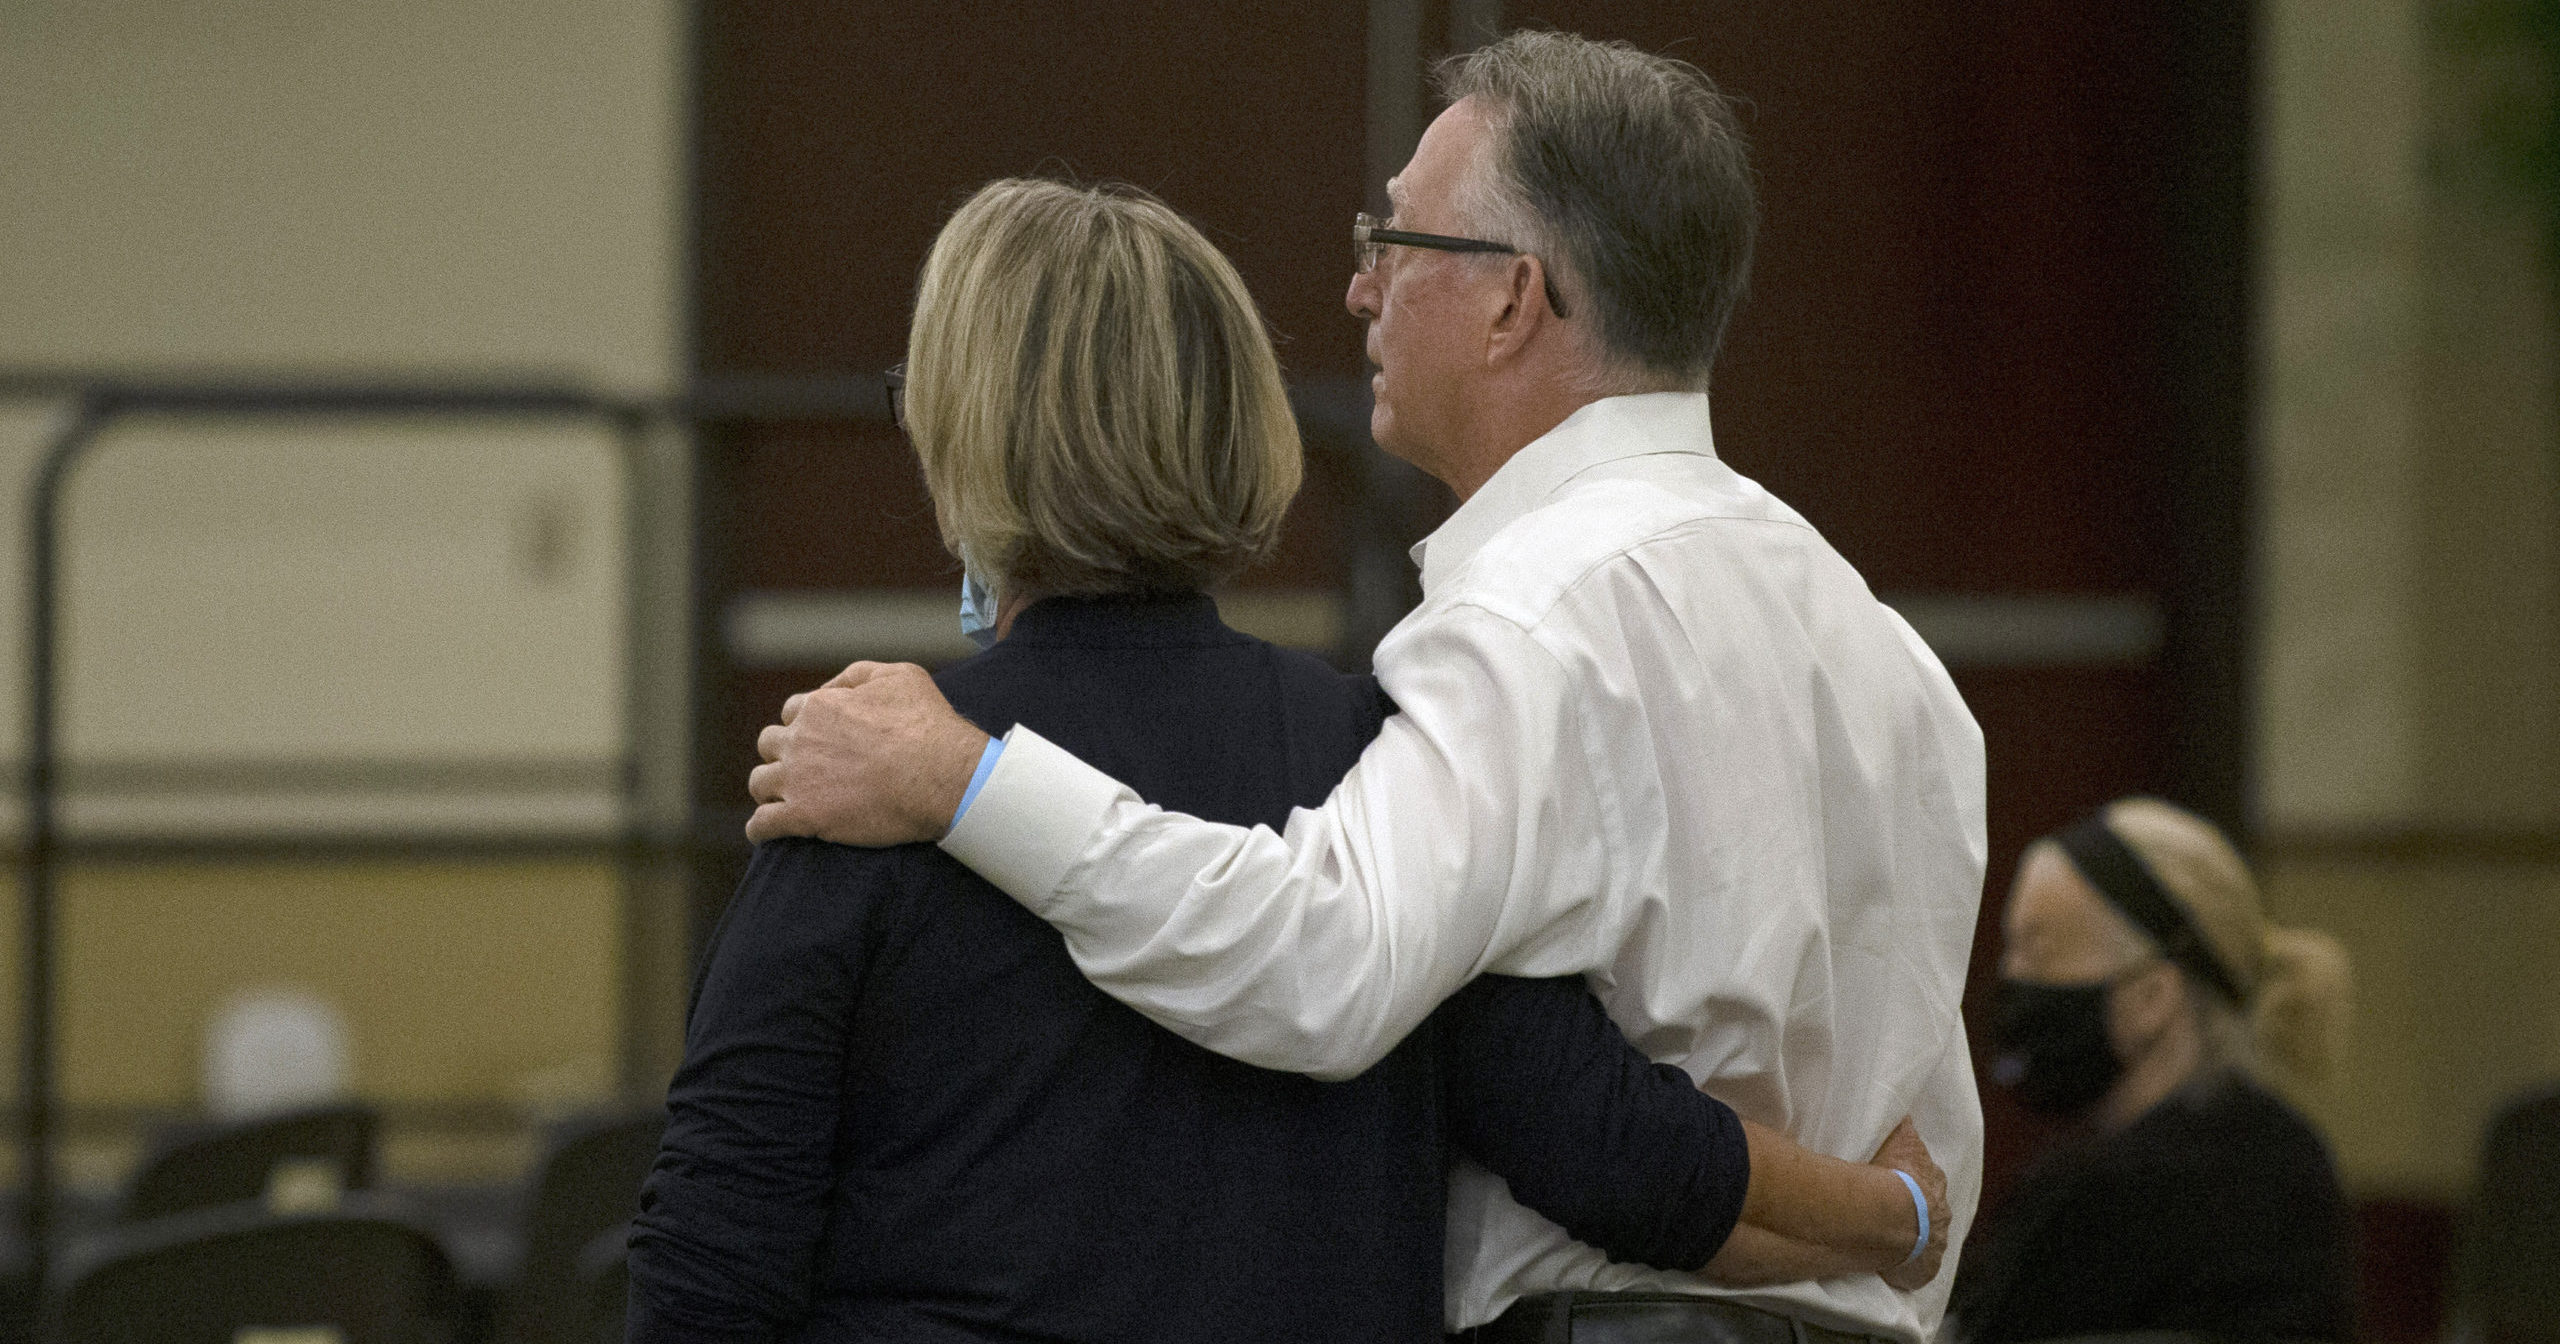 Gay and Bob Hardwick, who were attacked in their Stockton home in 1978 by Golden State Killer, Joseph James DeAngelo, stand as the charges are read against DeAngelo during a hearing in Sacramento Superior Court in Sacramento, California, on June 29, 2020. DeAngelo, 74, pleaded guilty to 13 counts of murder and multiple other charges 40 years after a sadistic series of assaults and slayings in California.